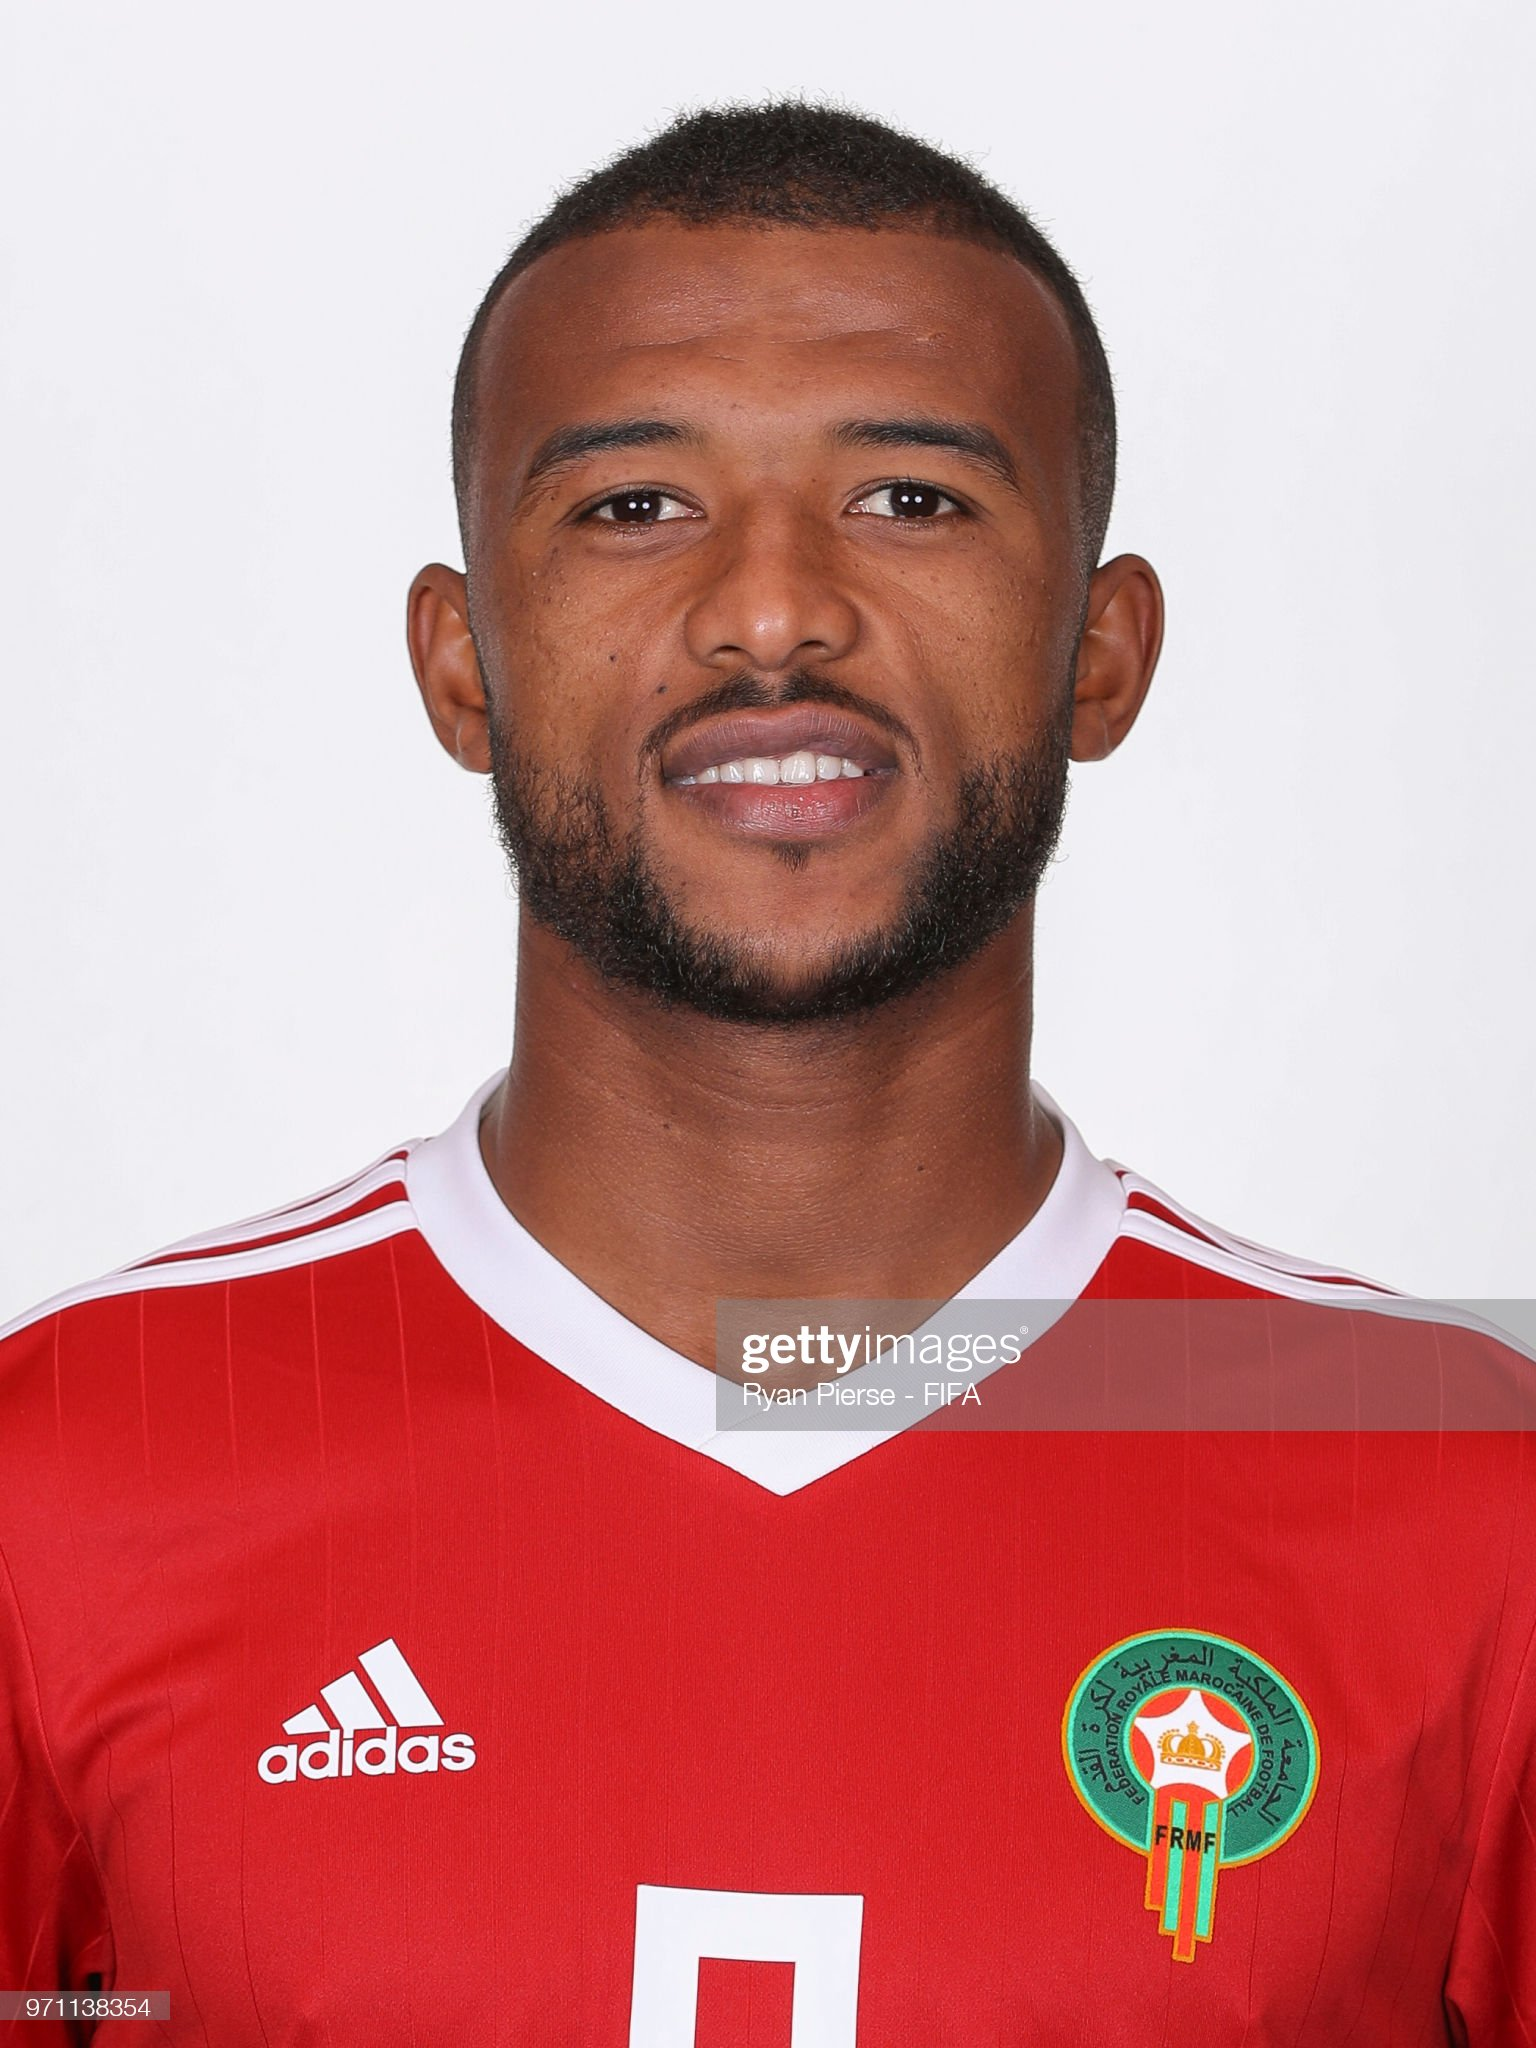 Norteafricanos Ayoub-el-kaabi-of-morocco-poses-during-the-official-fifa-world-cup-picture-id971138354?s=2048x2048